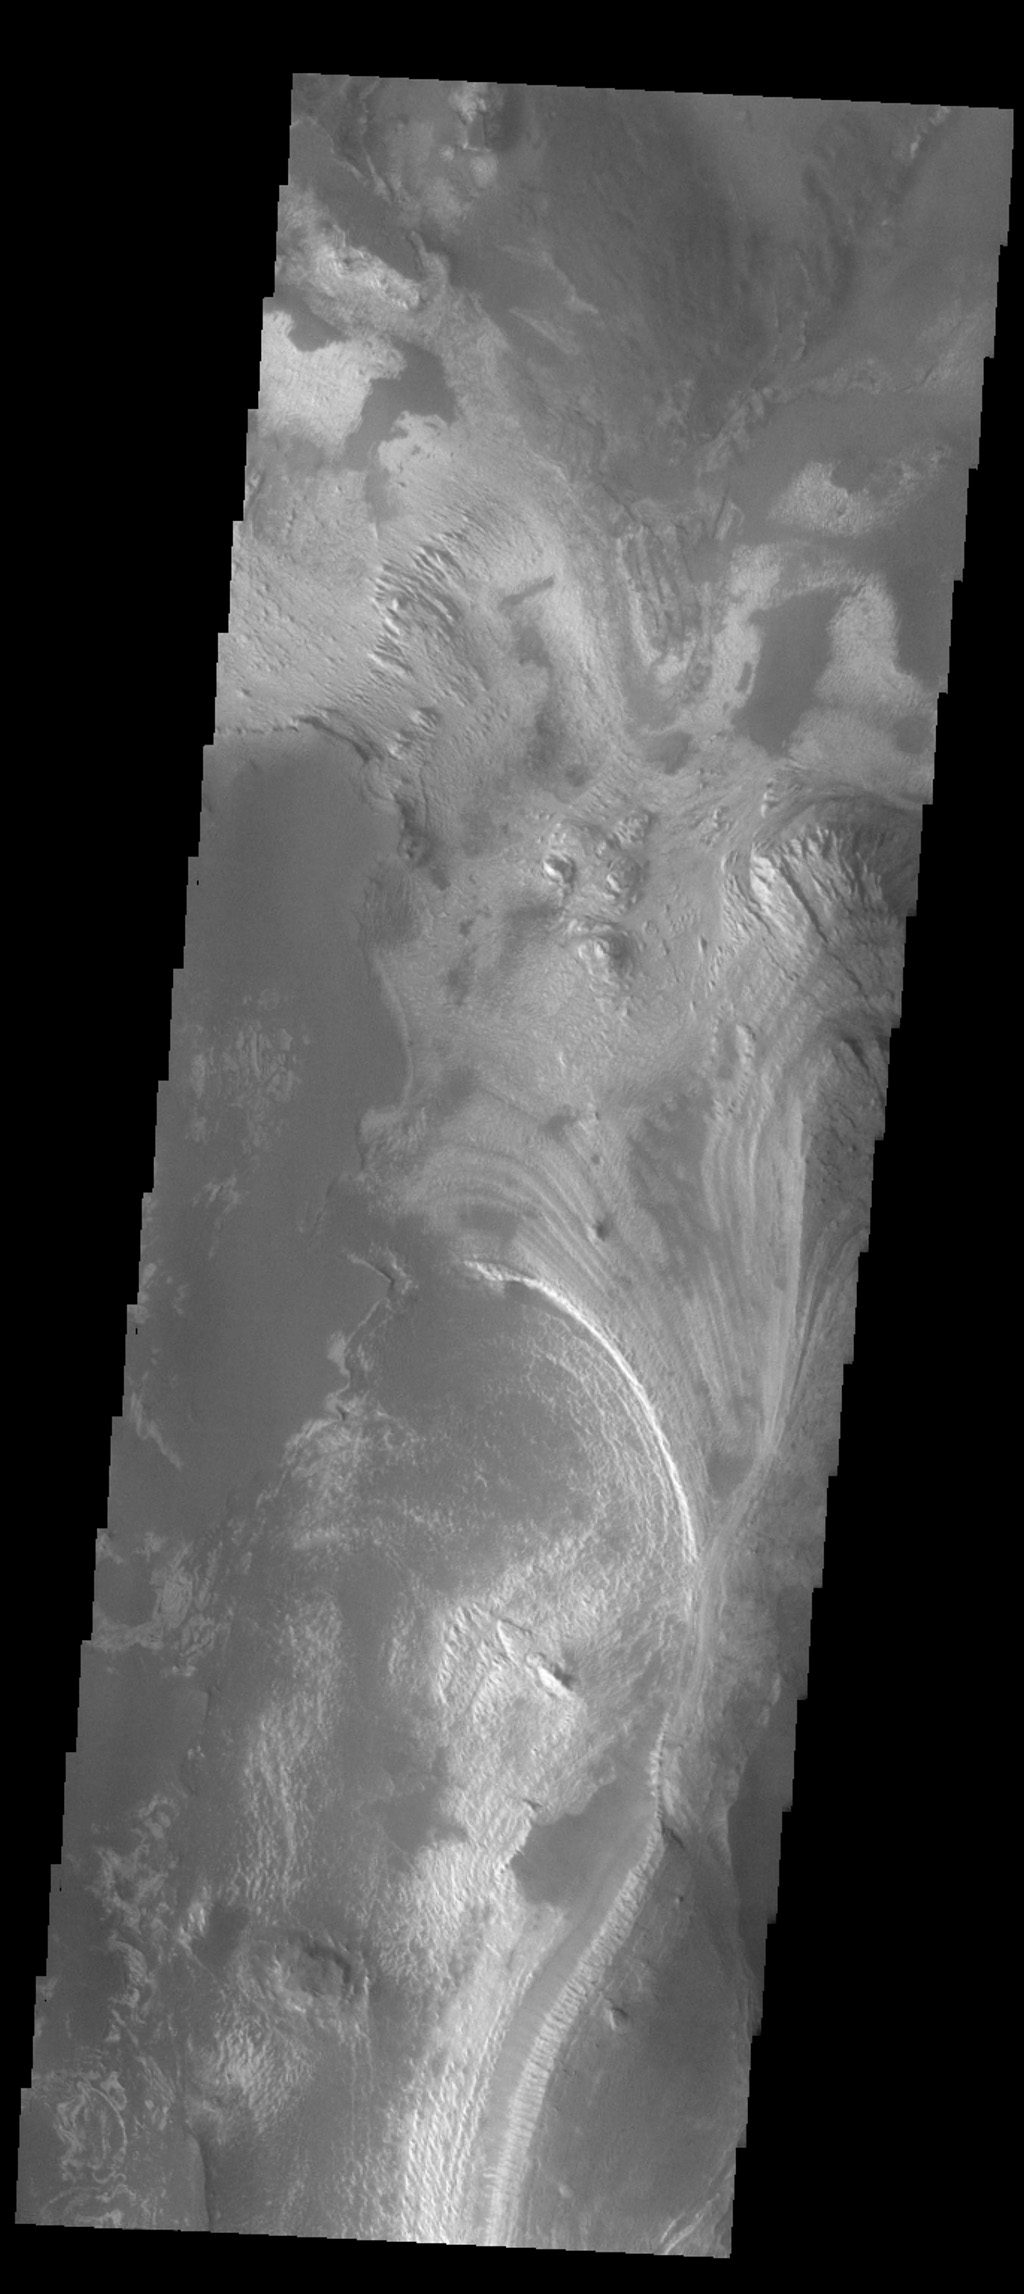 This image captured by NASA's 2001 Mars Odyssey spacecraft shows the part of the floor of Melas Chasma. Melas Chasma in the central chasma of Valles Marineris.